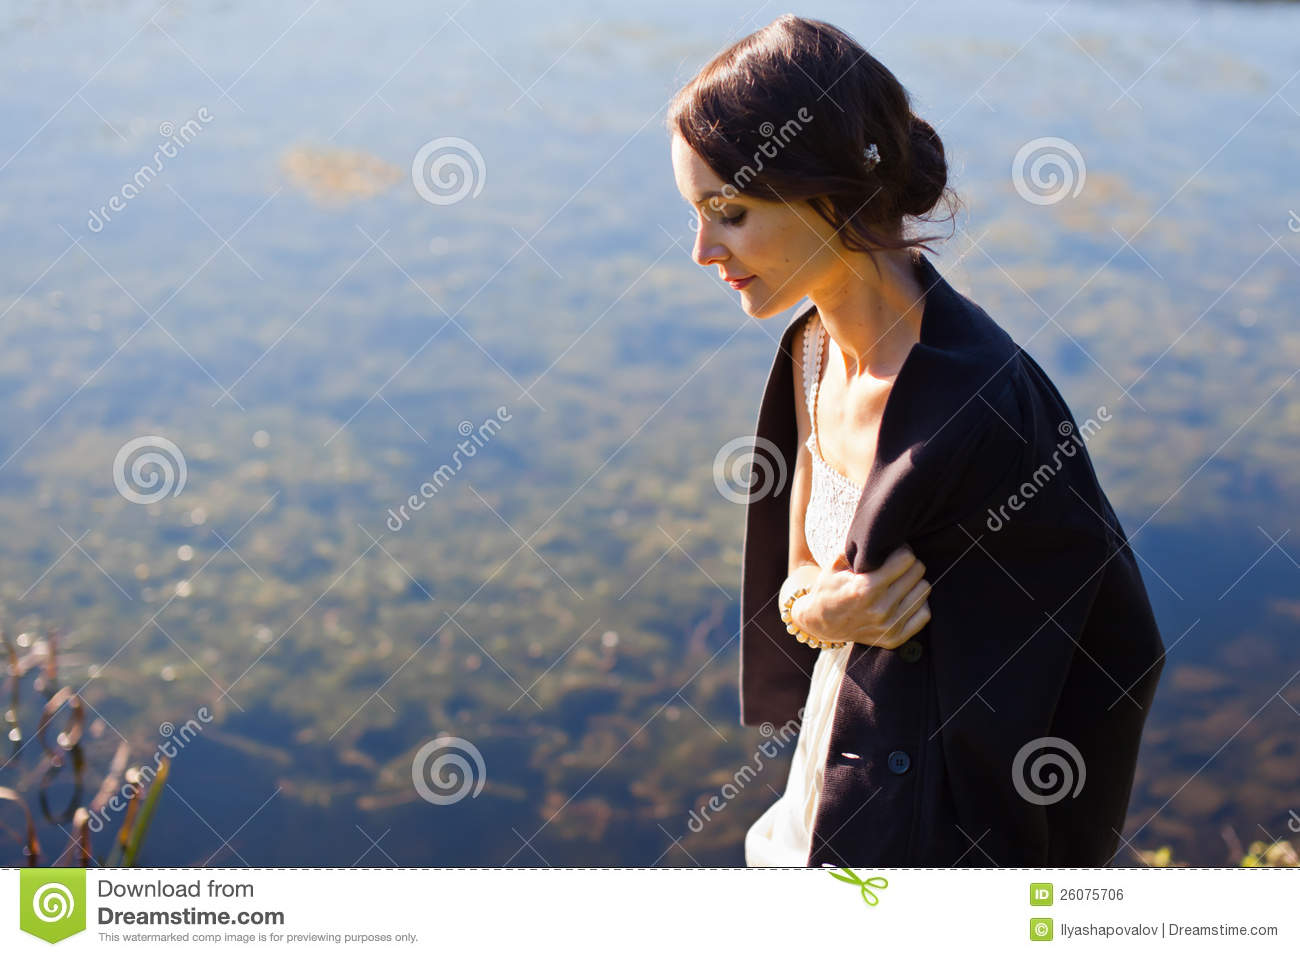 Young woman walking by water